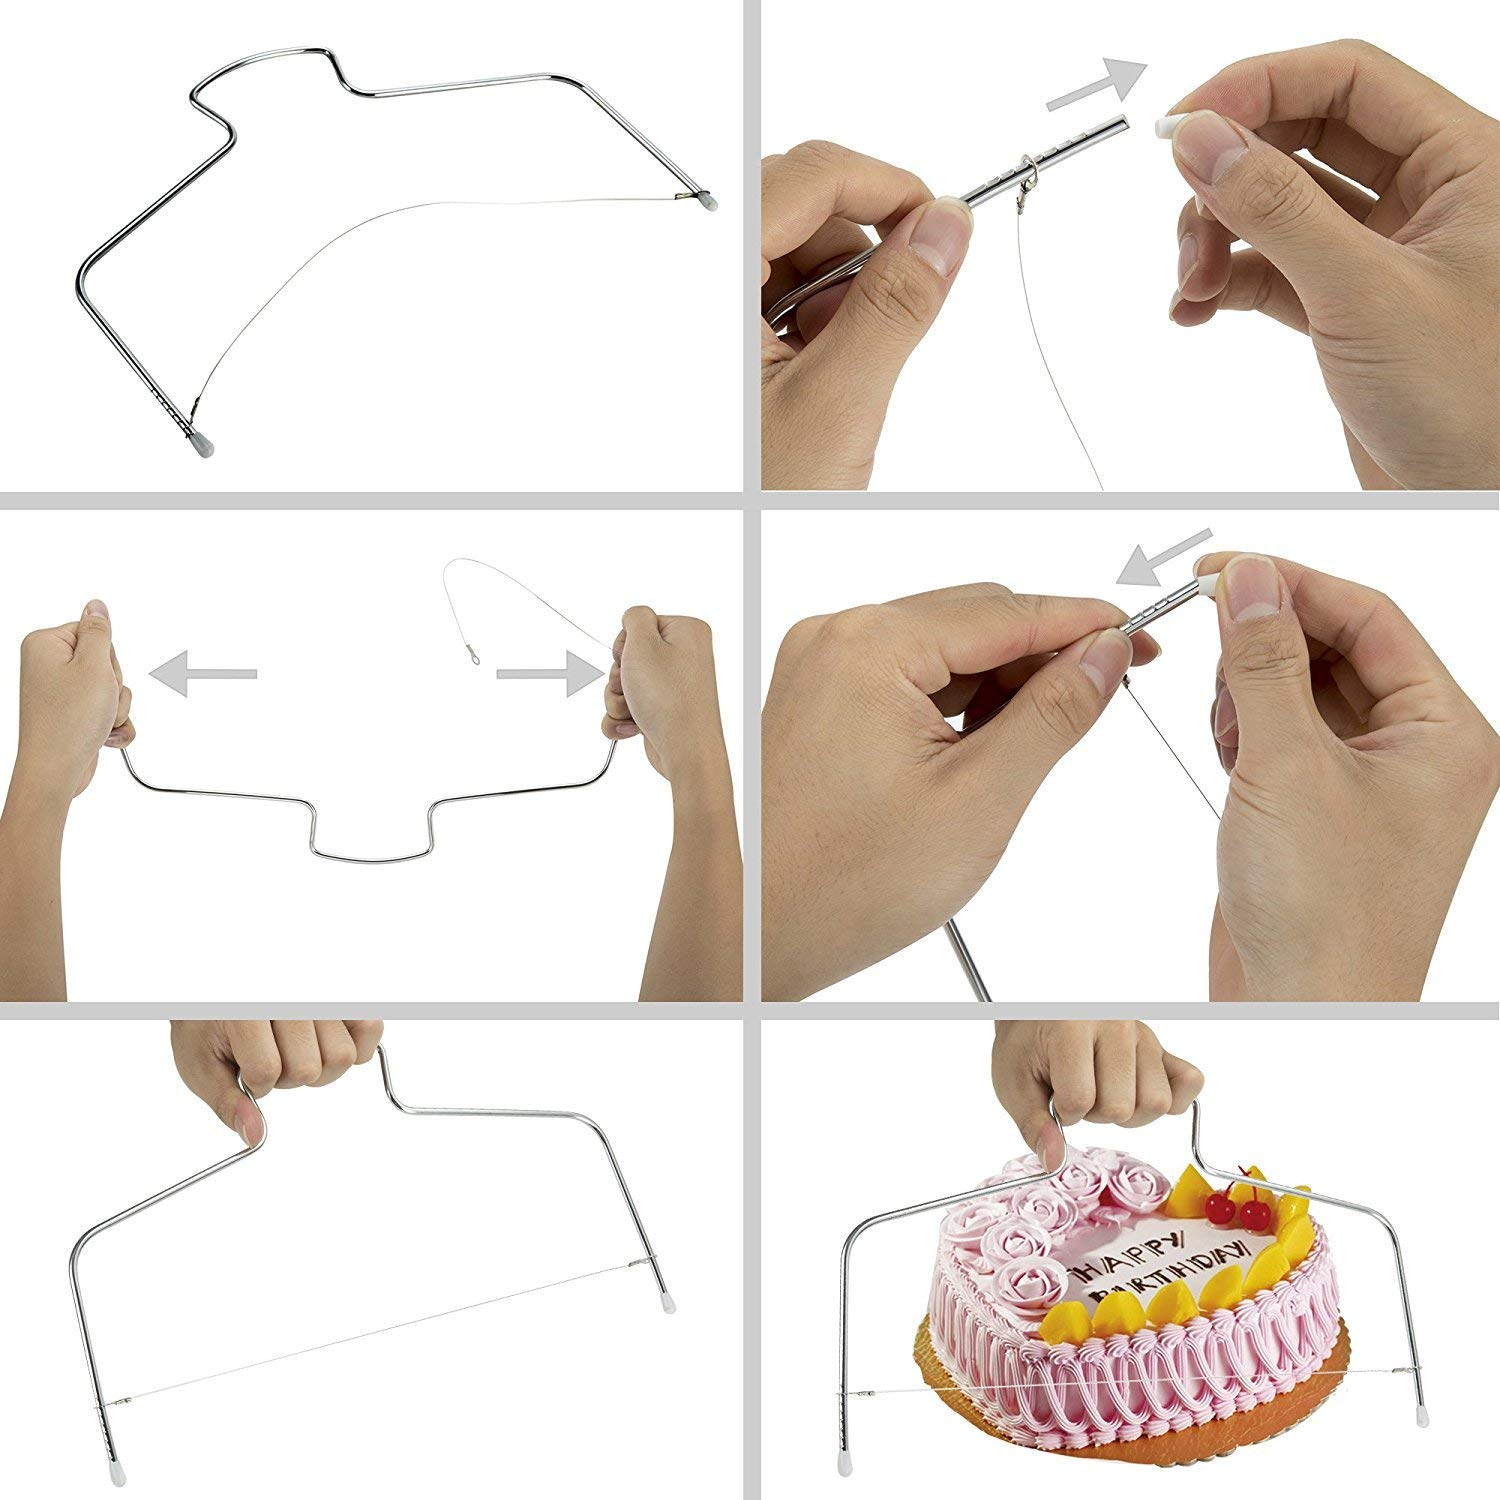 TimedMALL Cake Decorating Supplies with Cake Turntable Stand/Piping Nozzles Rotating Flower Lifter/Pastry Bag/Icing Spatula and Smoother/Cake Pen/plastic couplers and more, Best for Cake Decorating